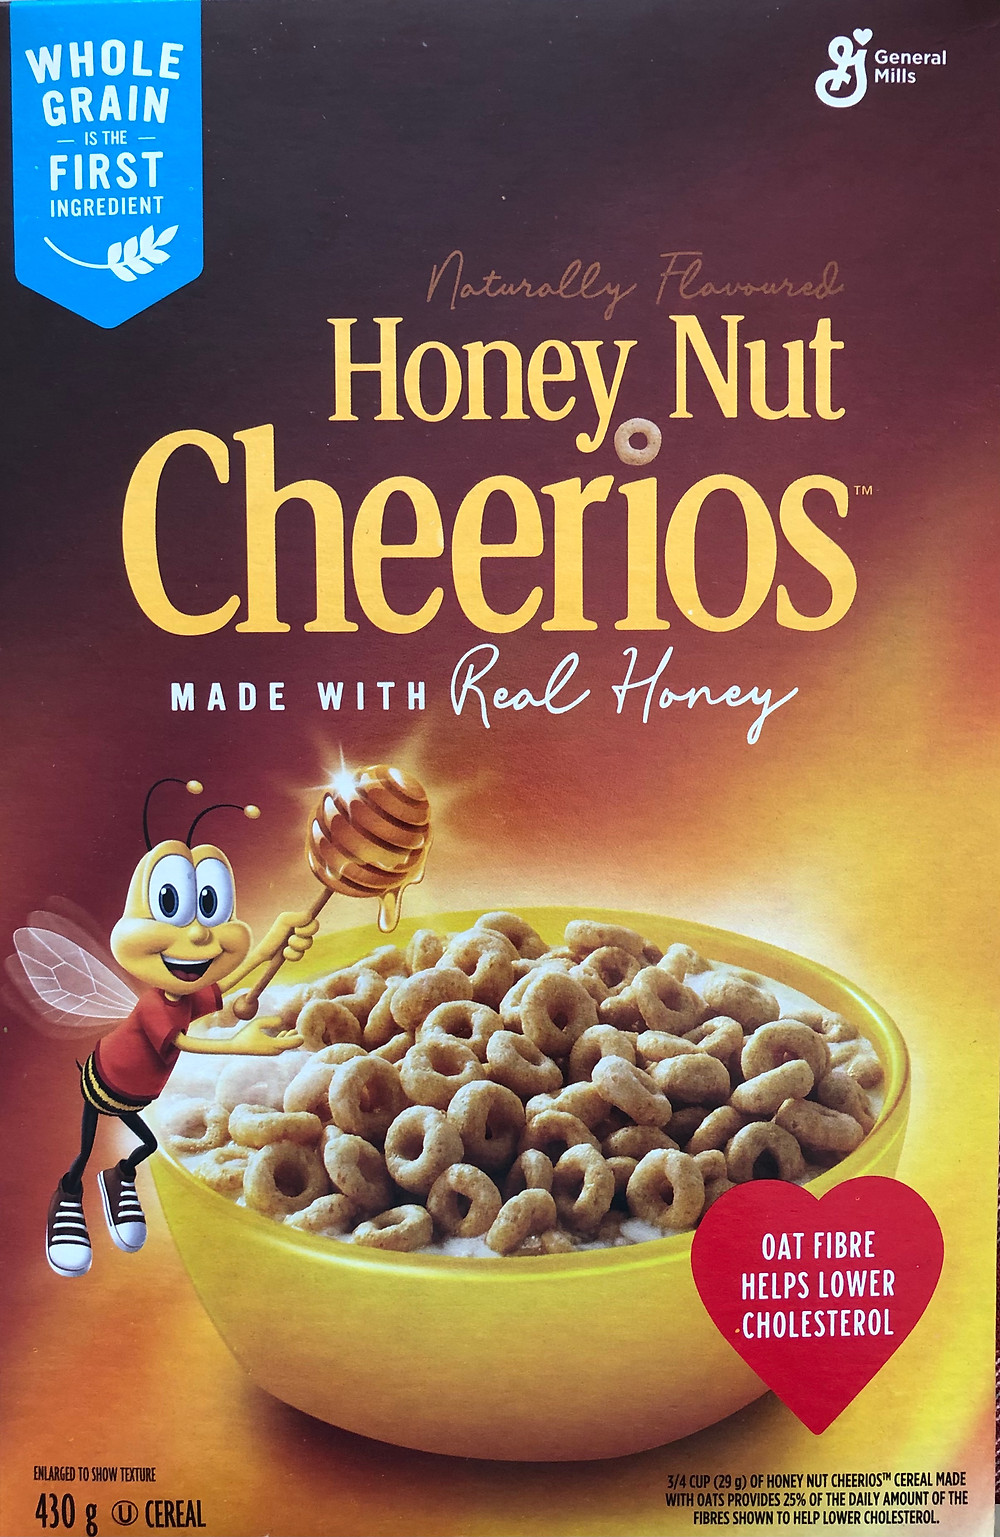 """The front-of-package Honey Nut Cheerios is displayed. In the top left corner in a blue banner, the box of cereal claims that """"Whole Grain is the First Ingredient"""". The box also states that it is naturally flavoured and made with real honey. In the bottom right corner, the box displays a heart with the statement """"Oat fibre helps lower cholesterol""""."""